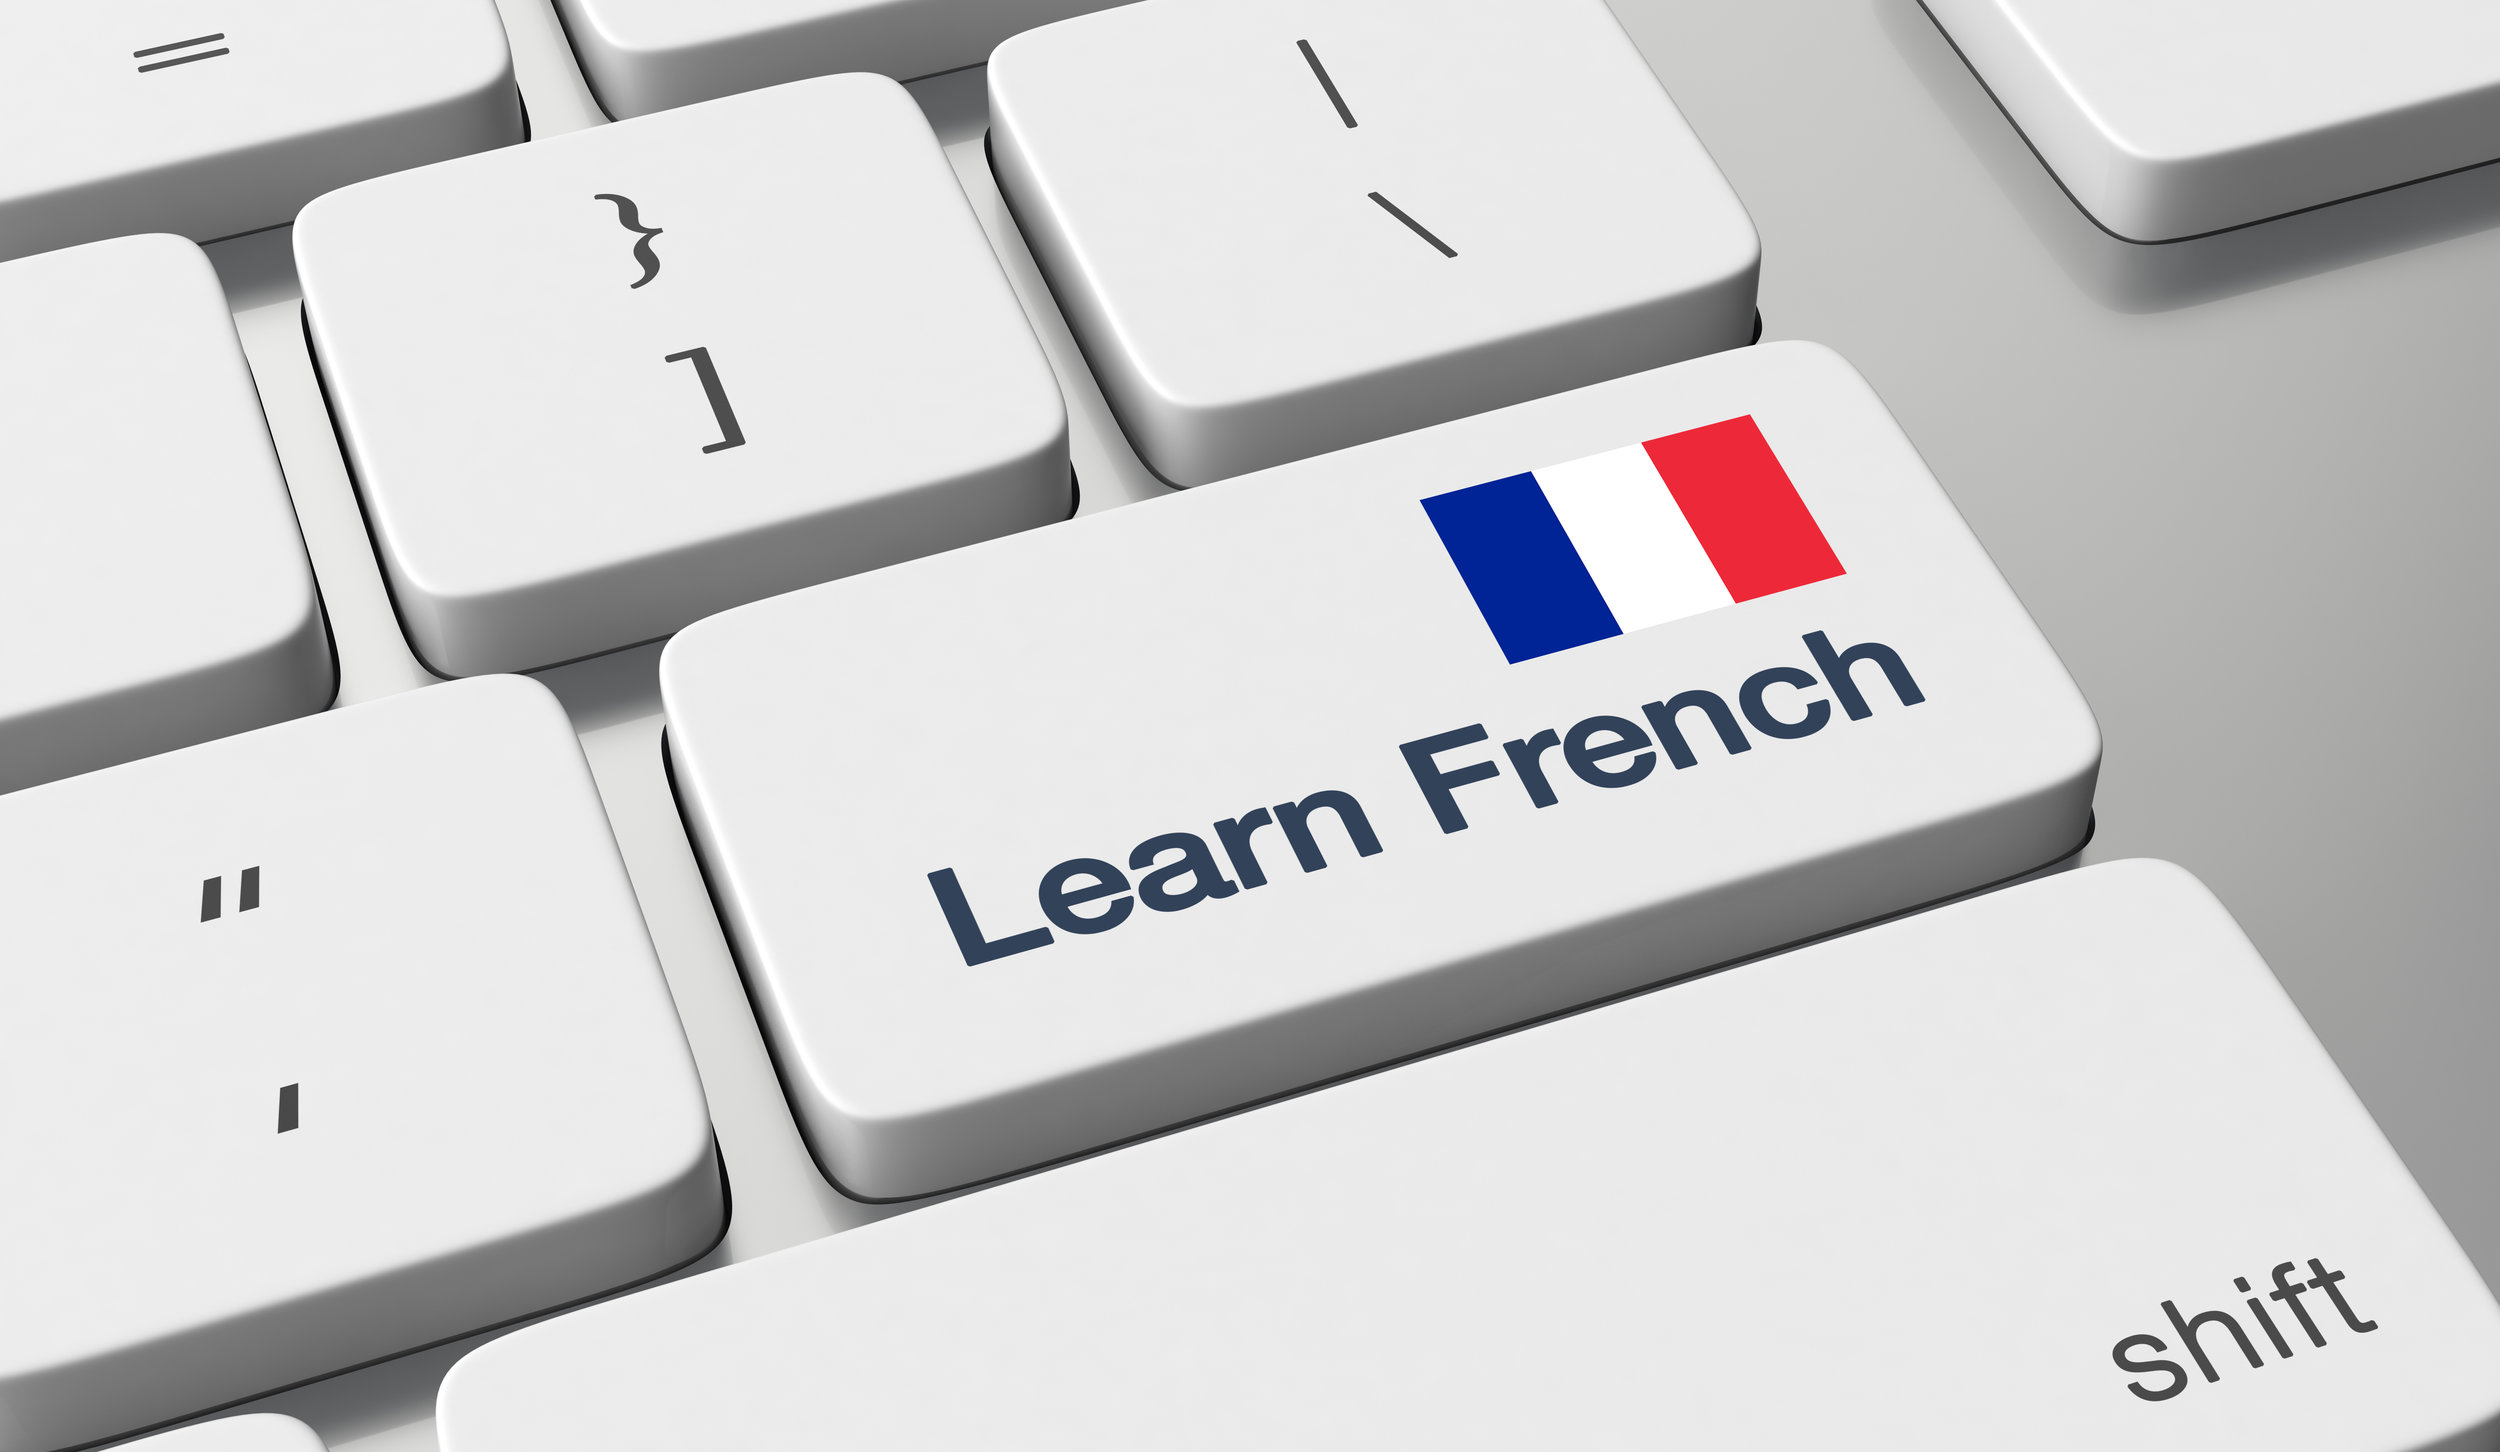 Learn French and Speak French